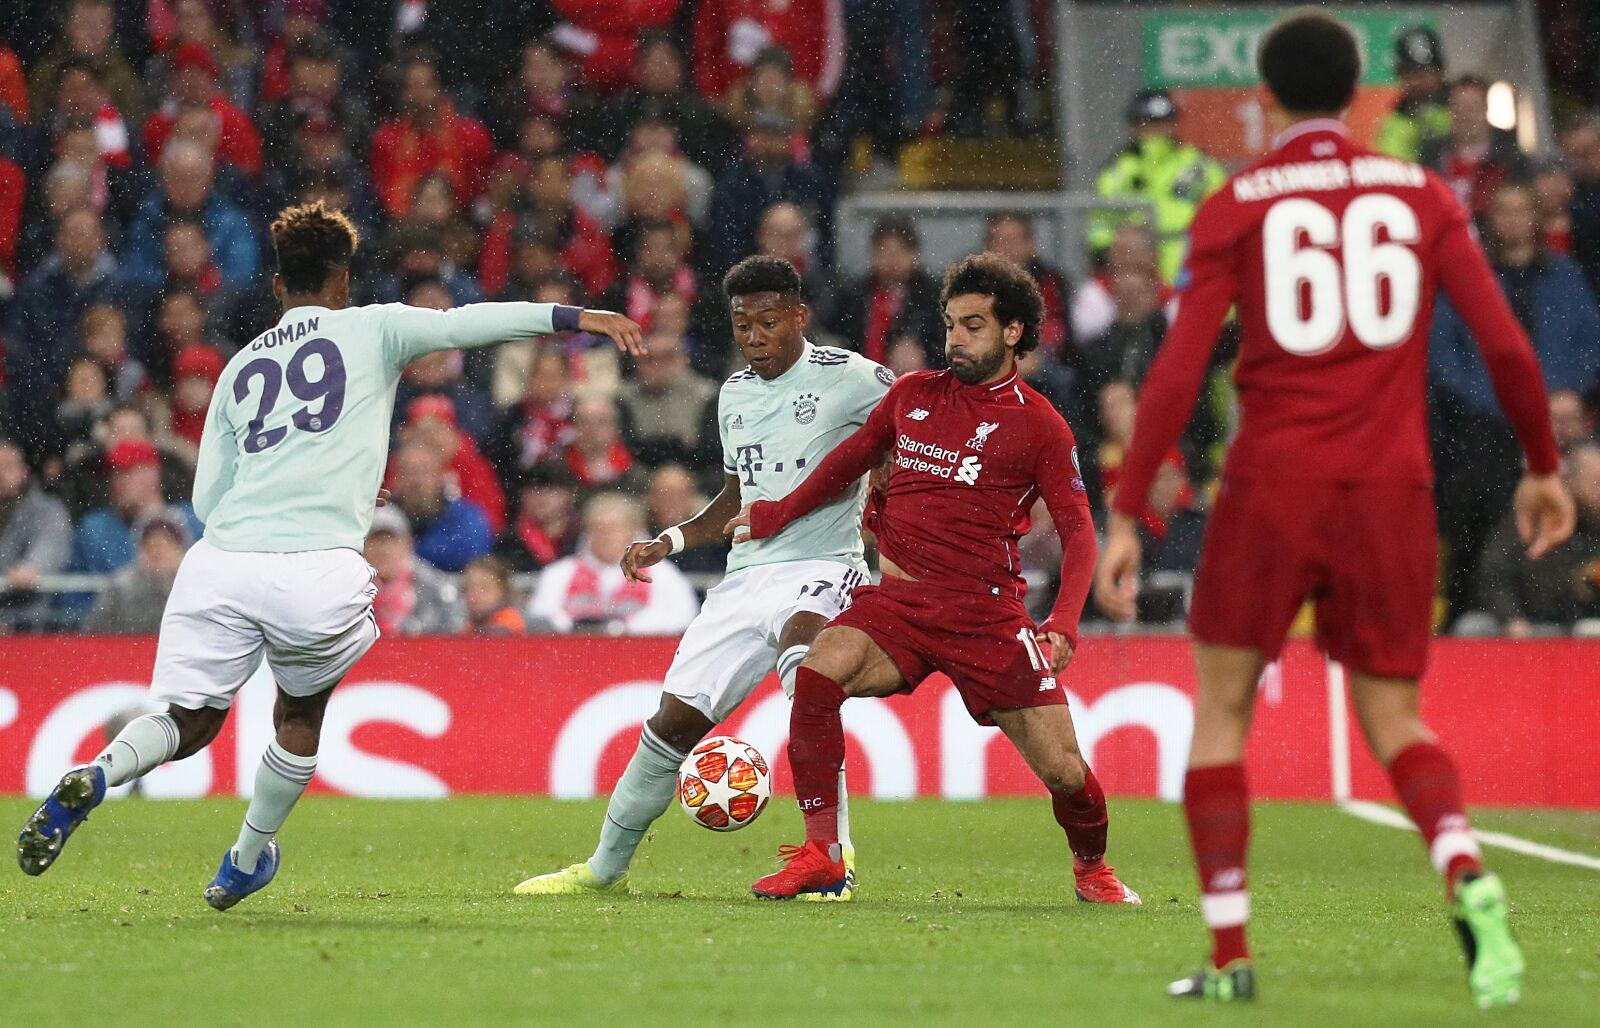 Bayern – Liverpool Facebook: What Bayern Munich Can Learn From Liverpool's Draw Vs. Everton